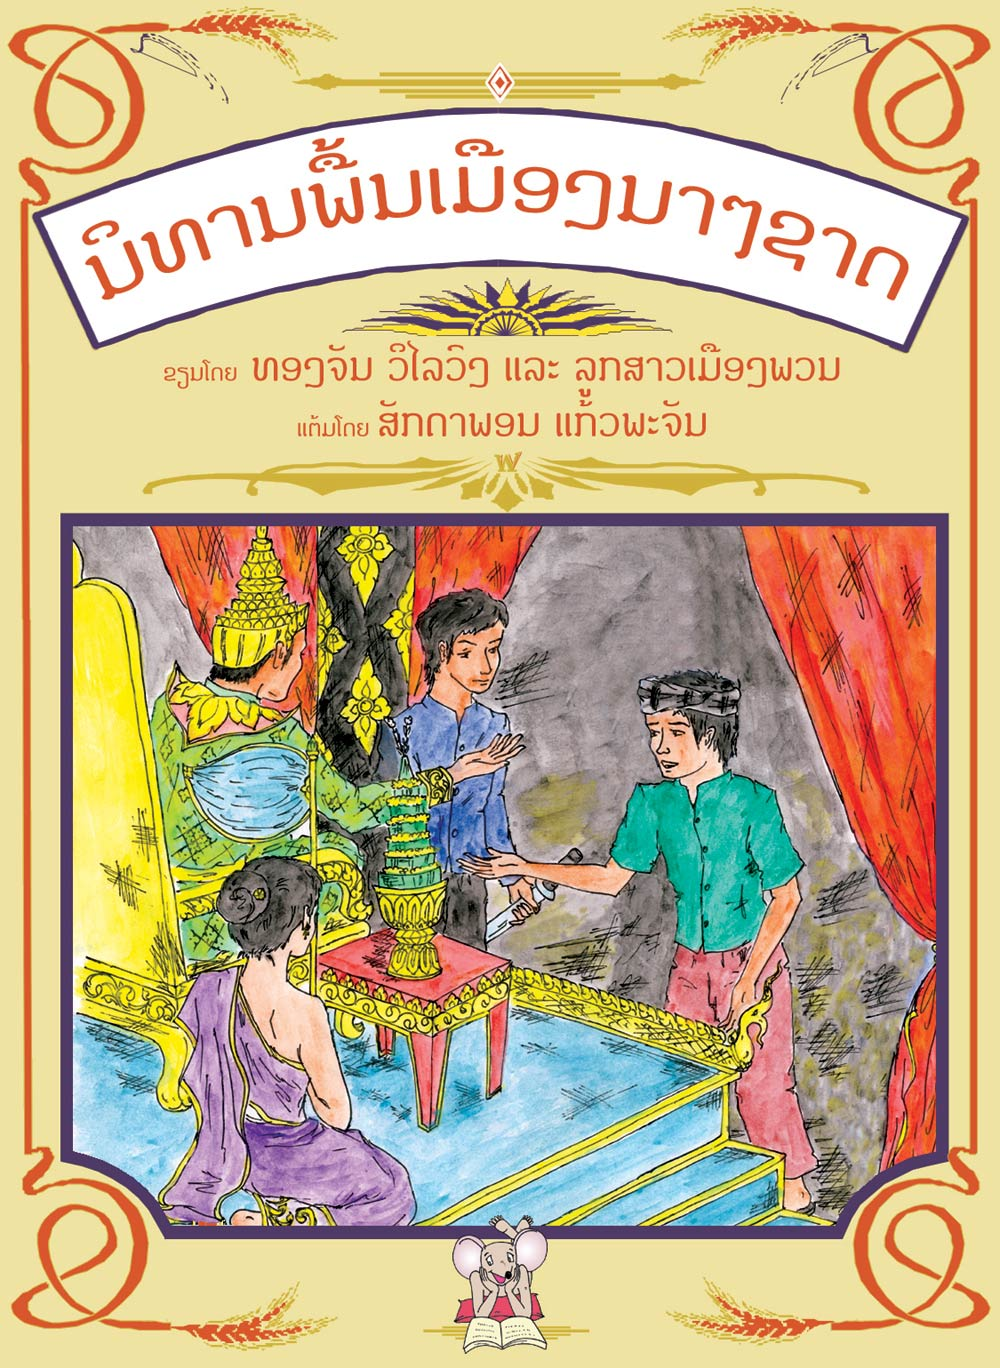 International Folktales large book cover, published in Lao language